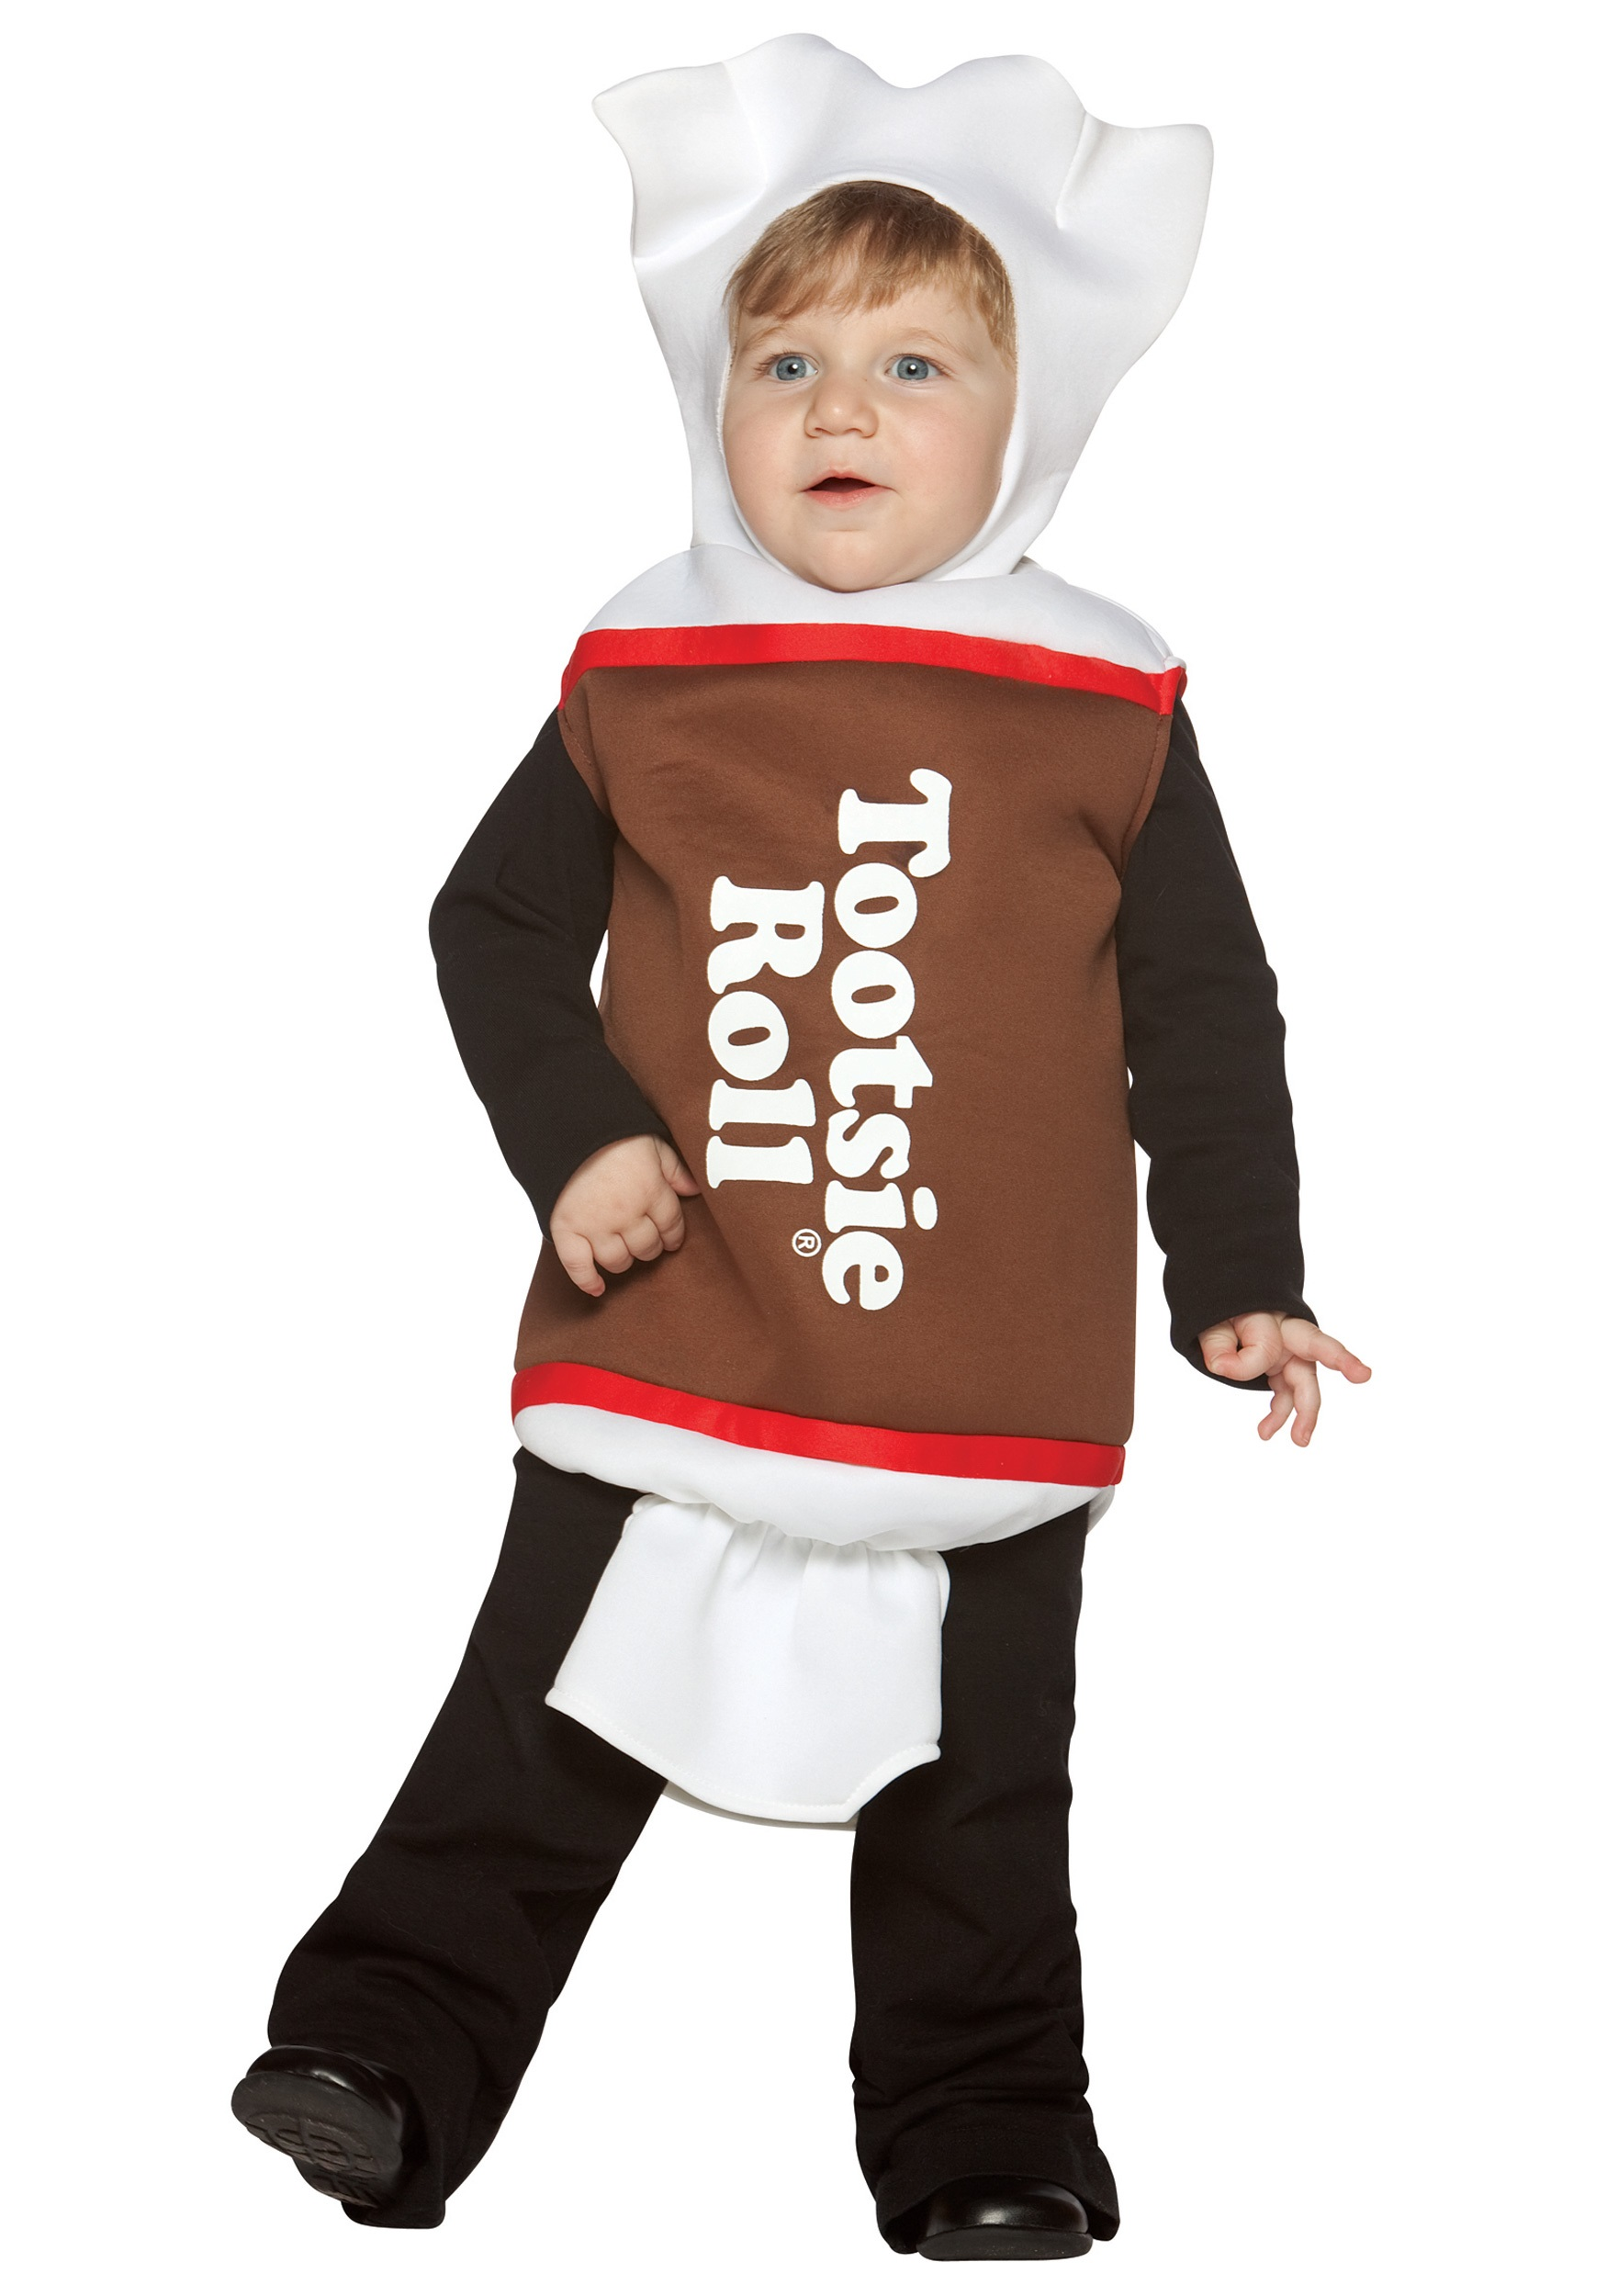 Toddler Tootsie Roll Costume  sc 1 st  Halloween Costumes & Toddler Tootsie Roll Costume - Halloween Costumes